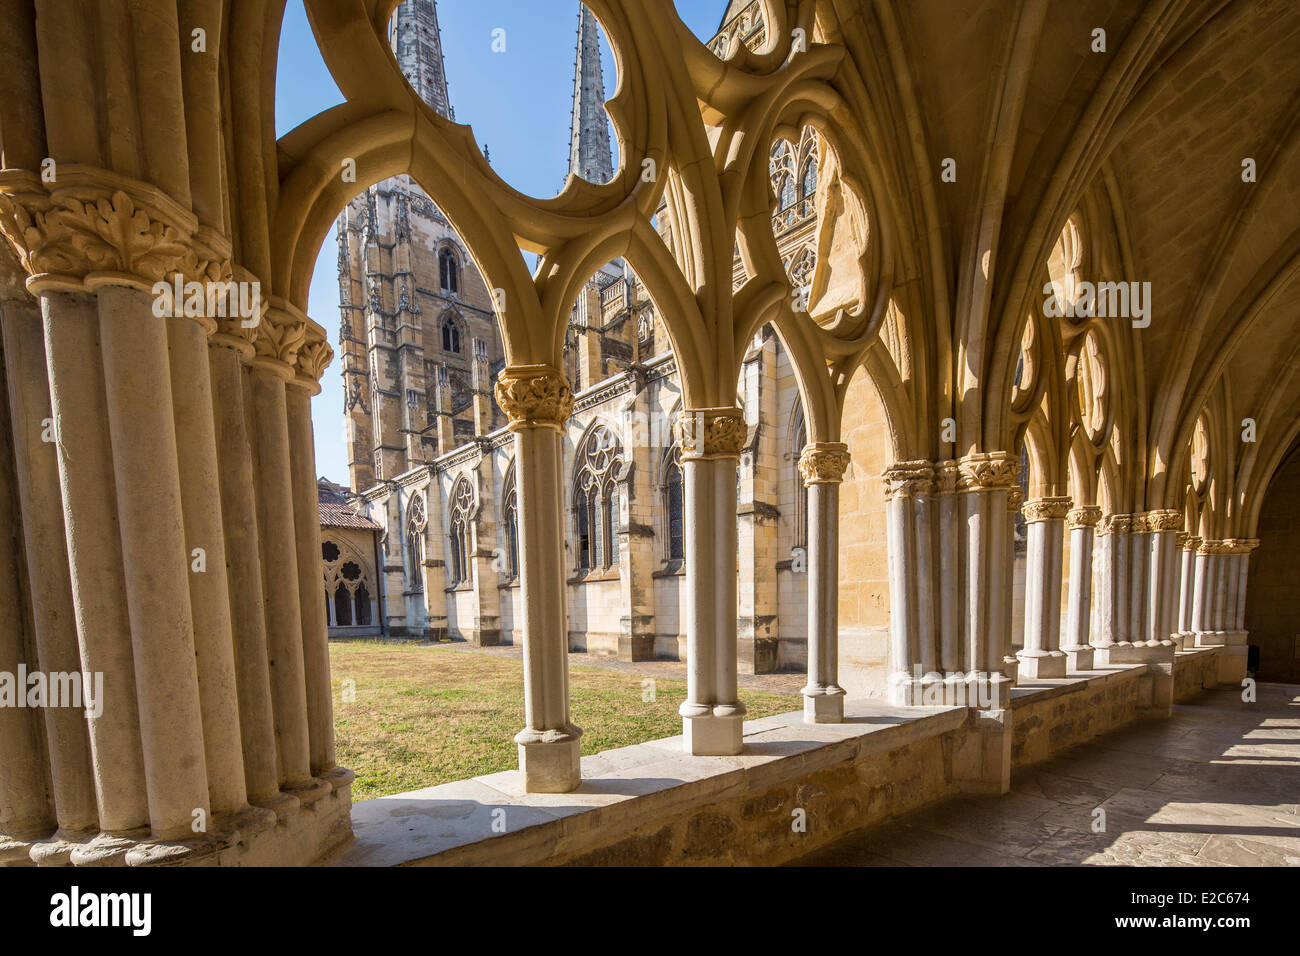 France, Pyrenees Atlantiques, Bayonne, convent of the cathedral Saint Marie - Stock Image